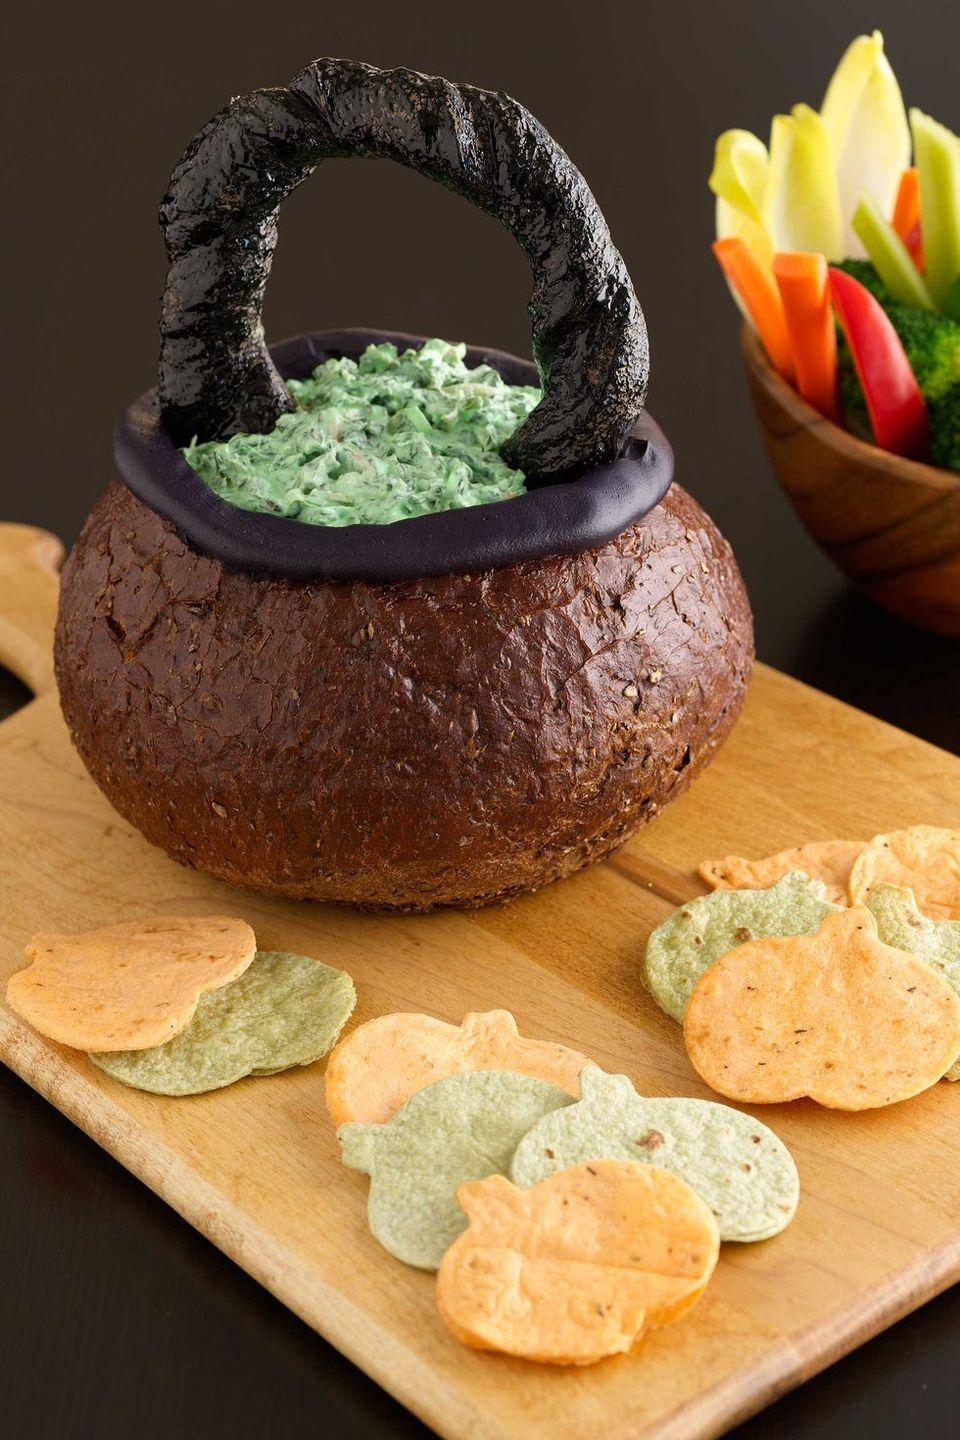 """<p>If you're not careful, this bread bowl cauldron will get carried off by one of your party guests. Made of pumpernickel bread and filled with creamy spinach dip, it certainly won't be full for long. </p><p><em><strong><a href=""""https://www.womansday.com/food-recipes/food-drinks/recipes/a10930/spooky-spinach-dip-in-bread-bowl-cauldron-recipe-122179/"""" rel=""""nofollow noopener"""" target=""""_blank"""" data-ylk=""""slk:Get the Spooky Spinach Dip In Bread Bowl Cauldron recipe."""" class=""""link rapid-noclick-resp"""">Get the Spooky Spinach Dip In Bread Bowl Cauldron recipe.</a></strong></em></p>"""